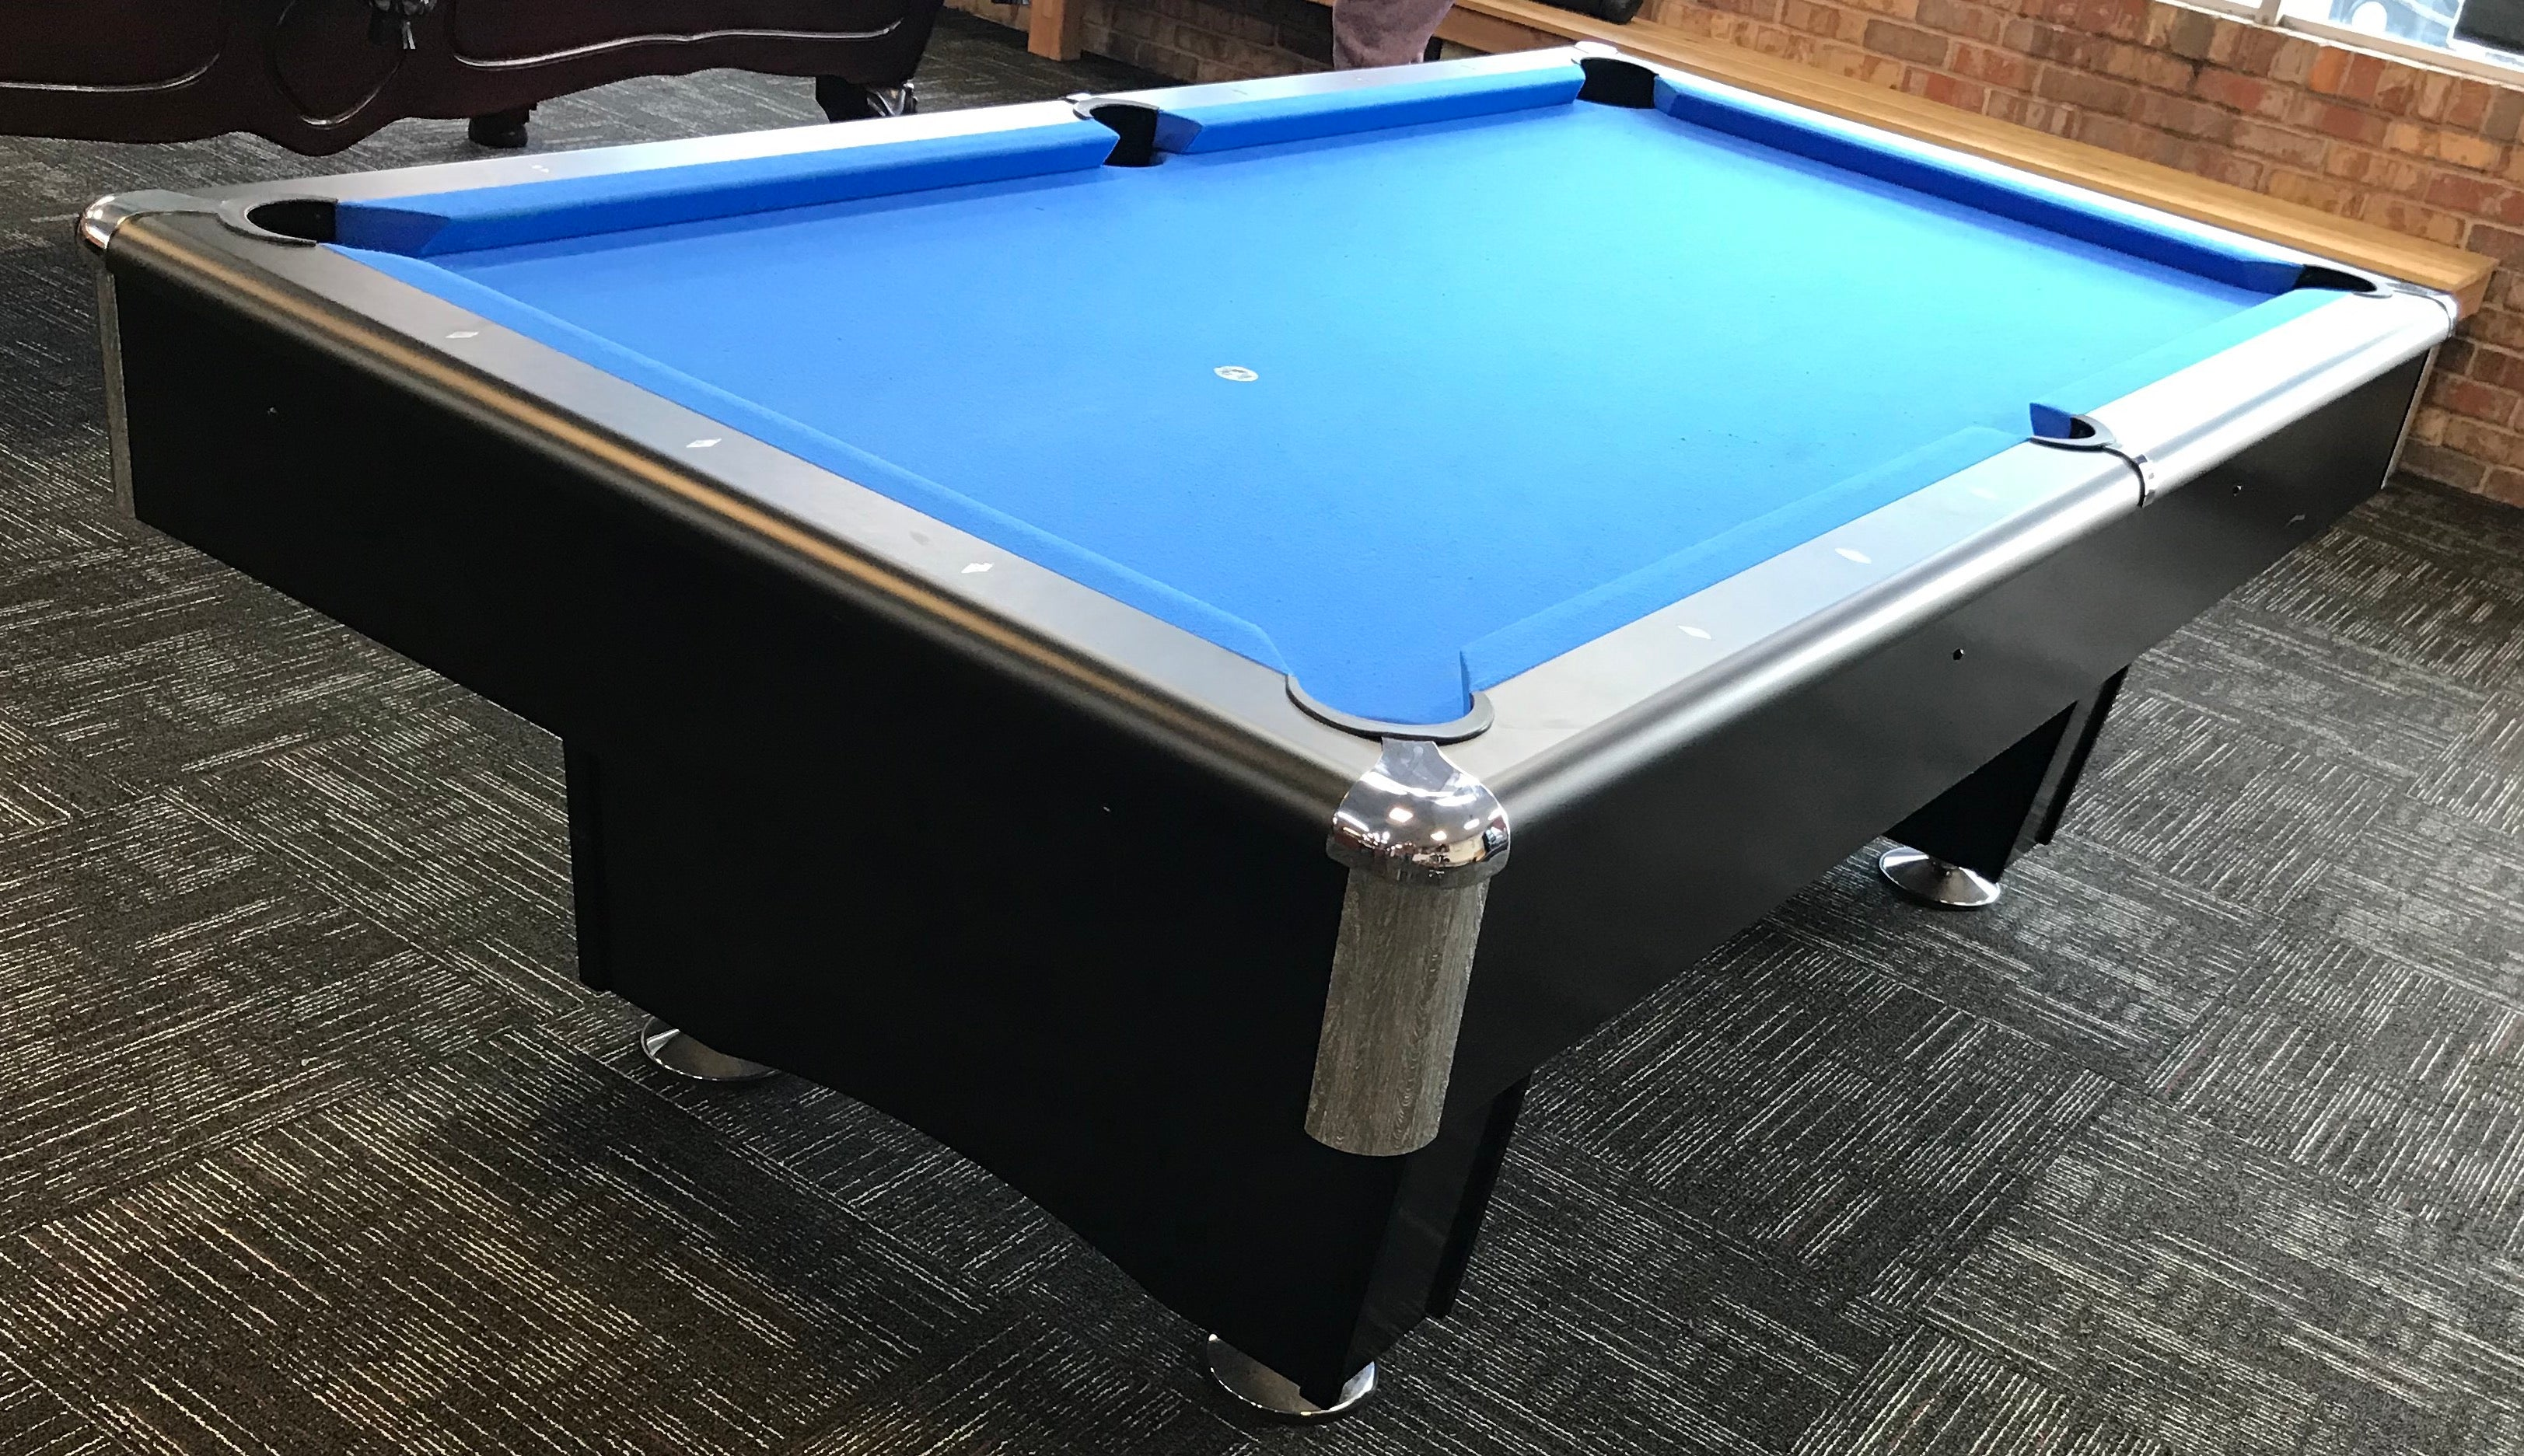 SOLD Used CL Bailey Addison Pool Table Coolpooltablescom - Cl bailey pool table